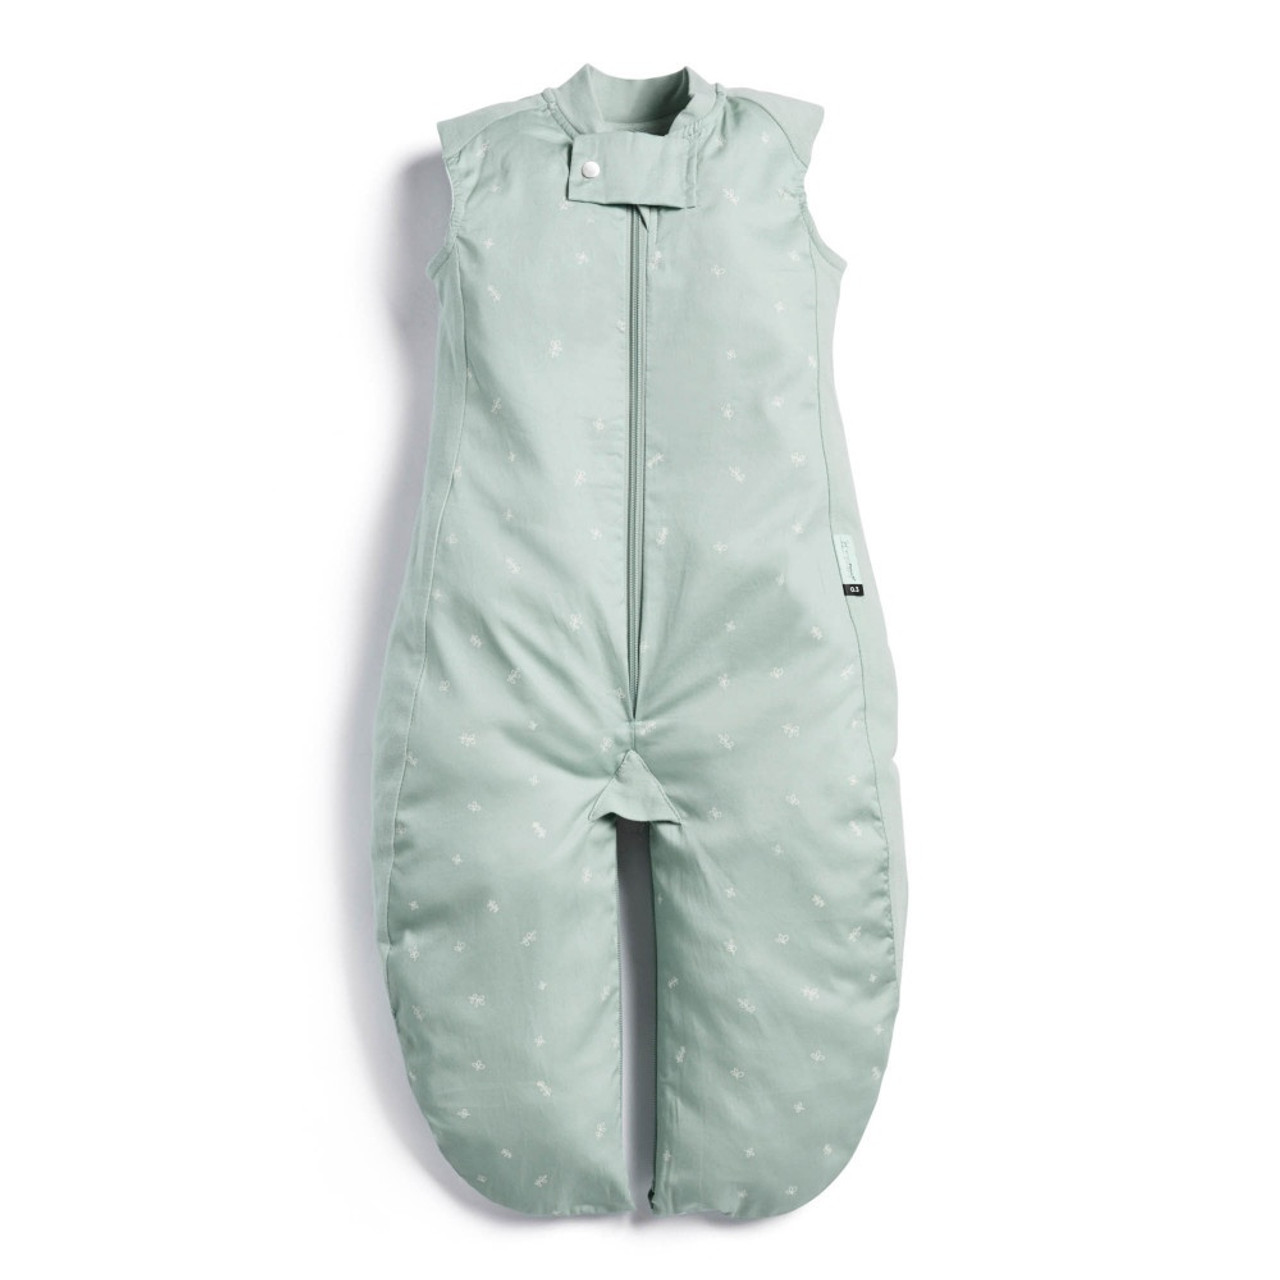 Ergopouch Sleep Suit Bag 0.3 Tog 2-4 Years SAGE at Baby Barn Discounts